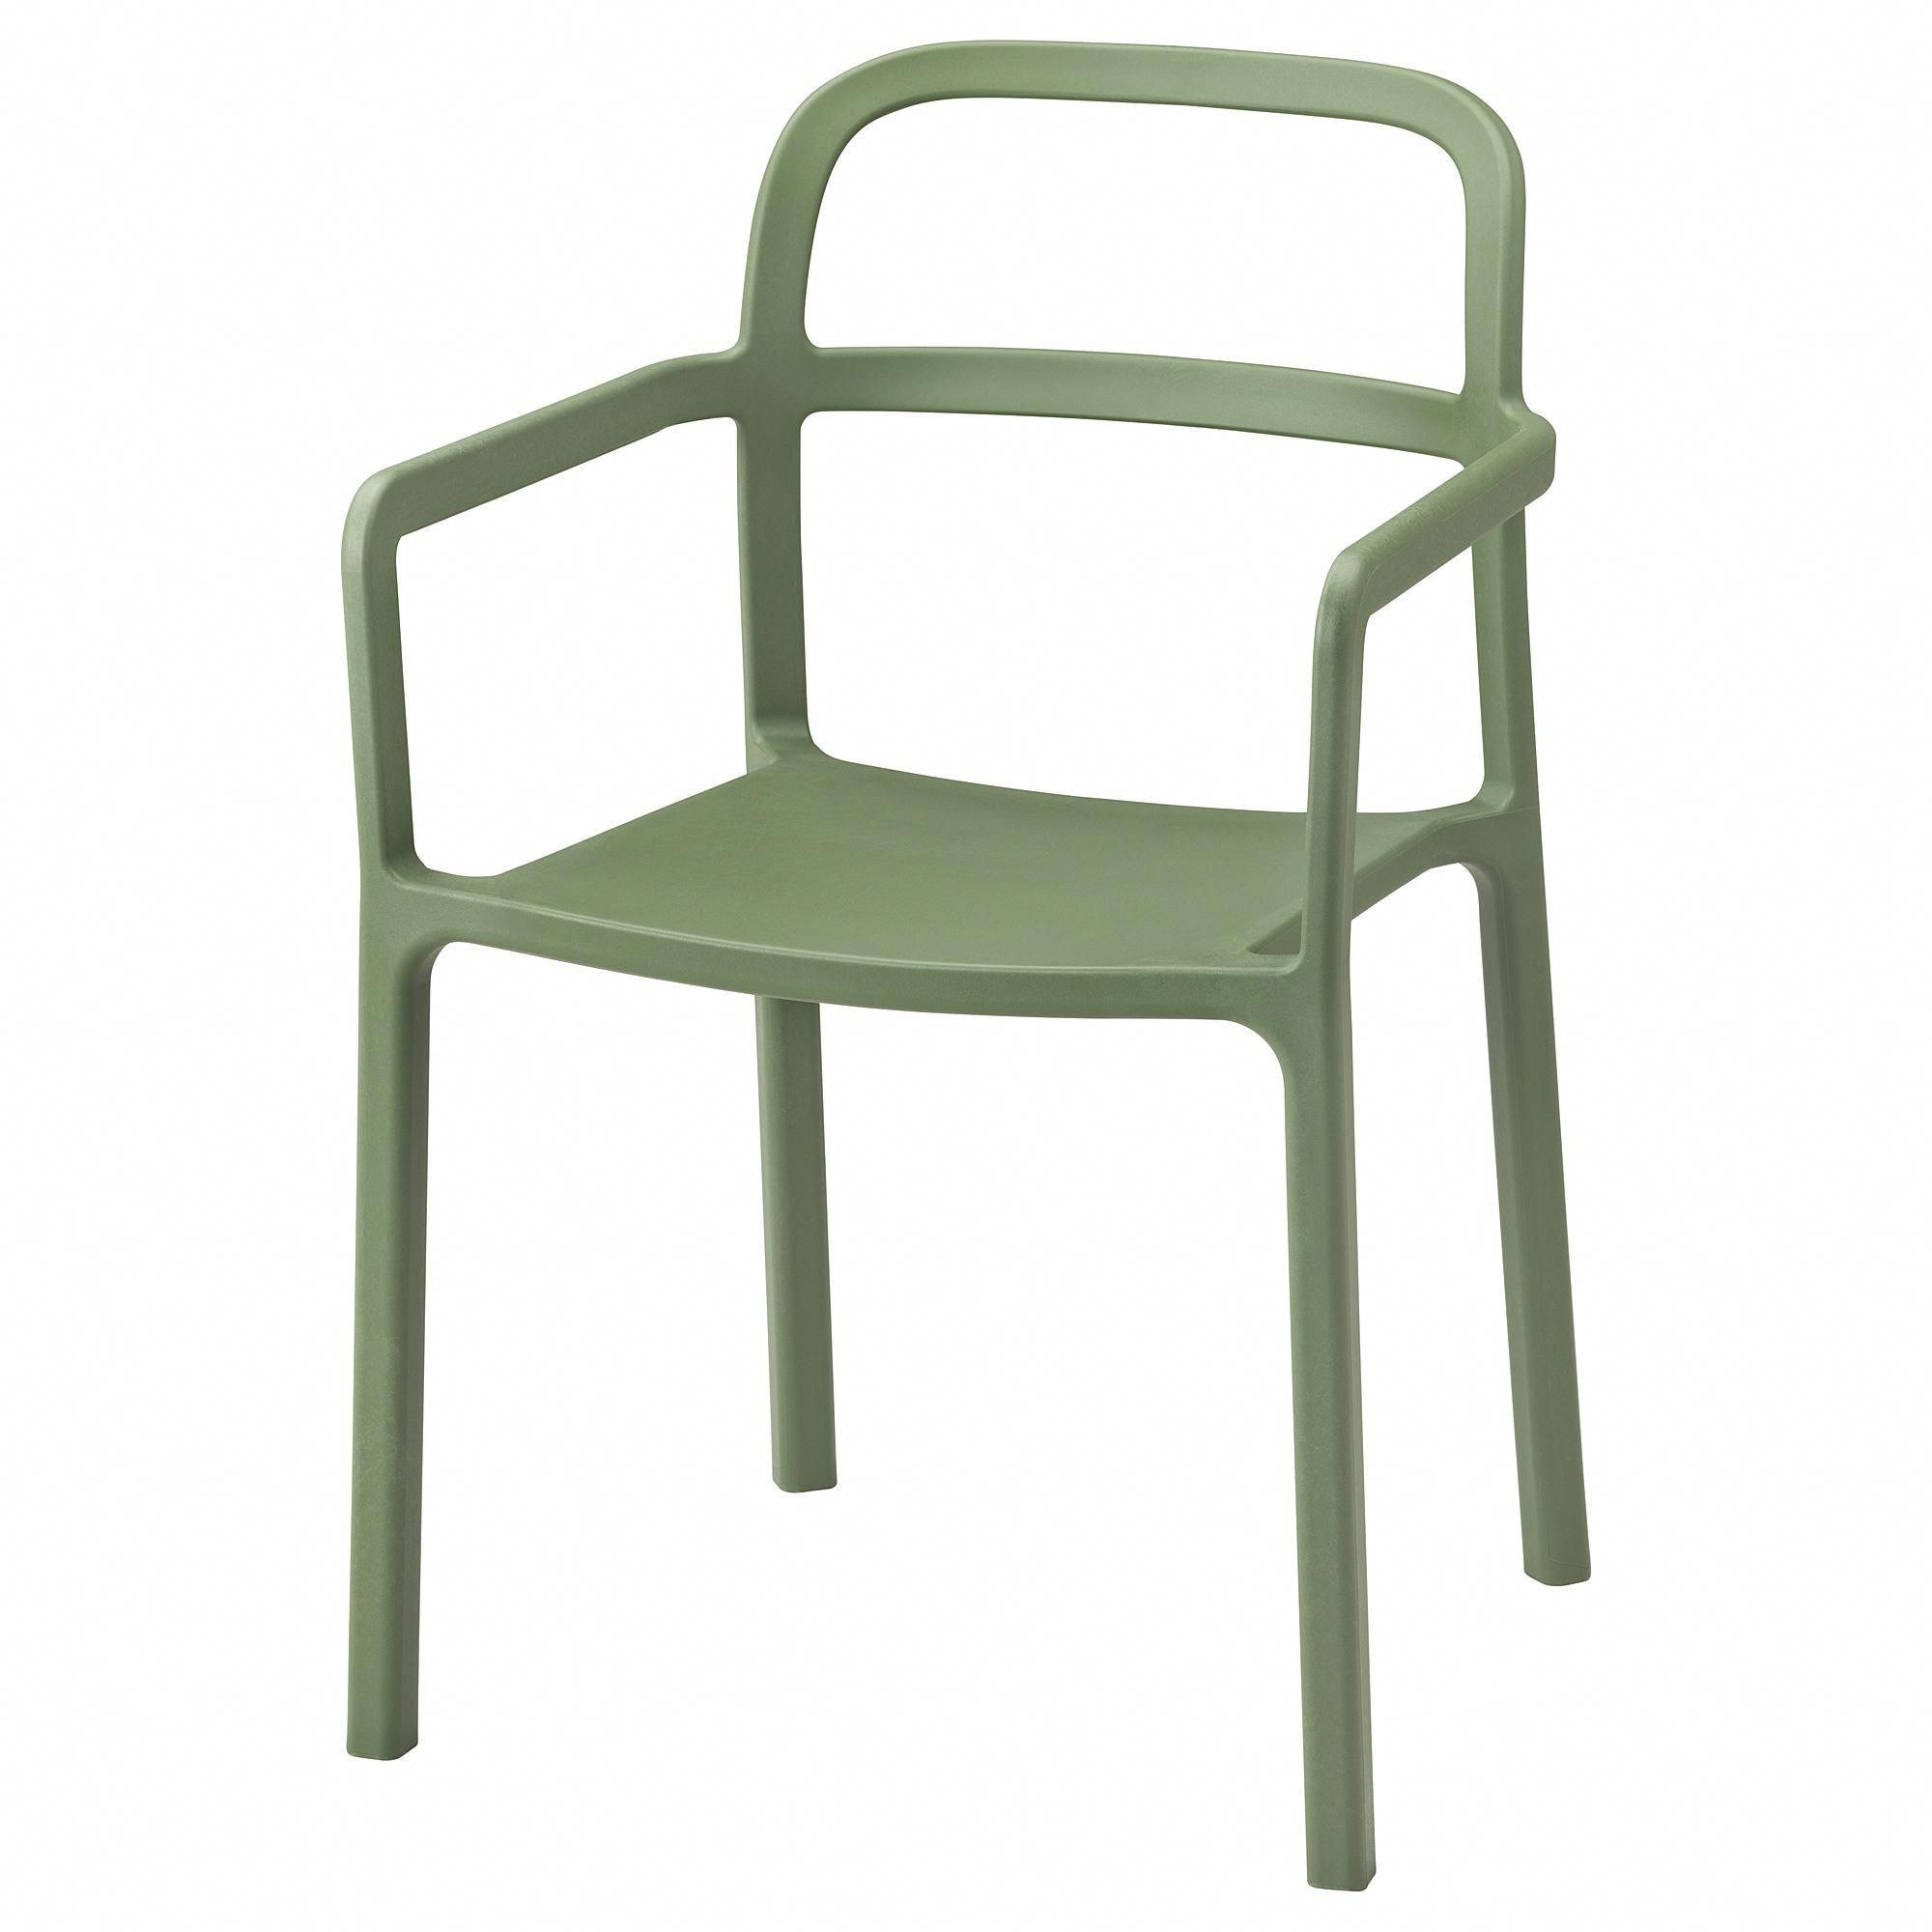 Ikea ypperlig armchair in outdoor green ikeagardenfurniture